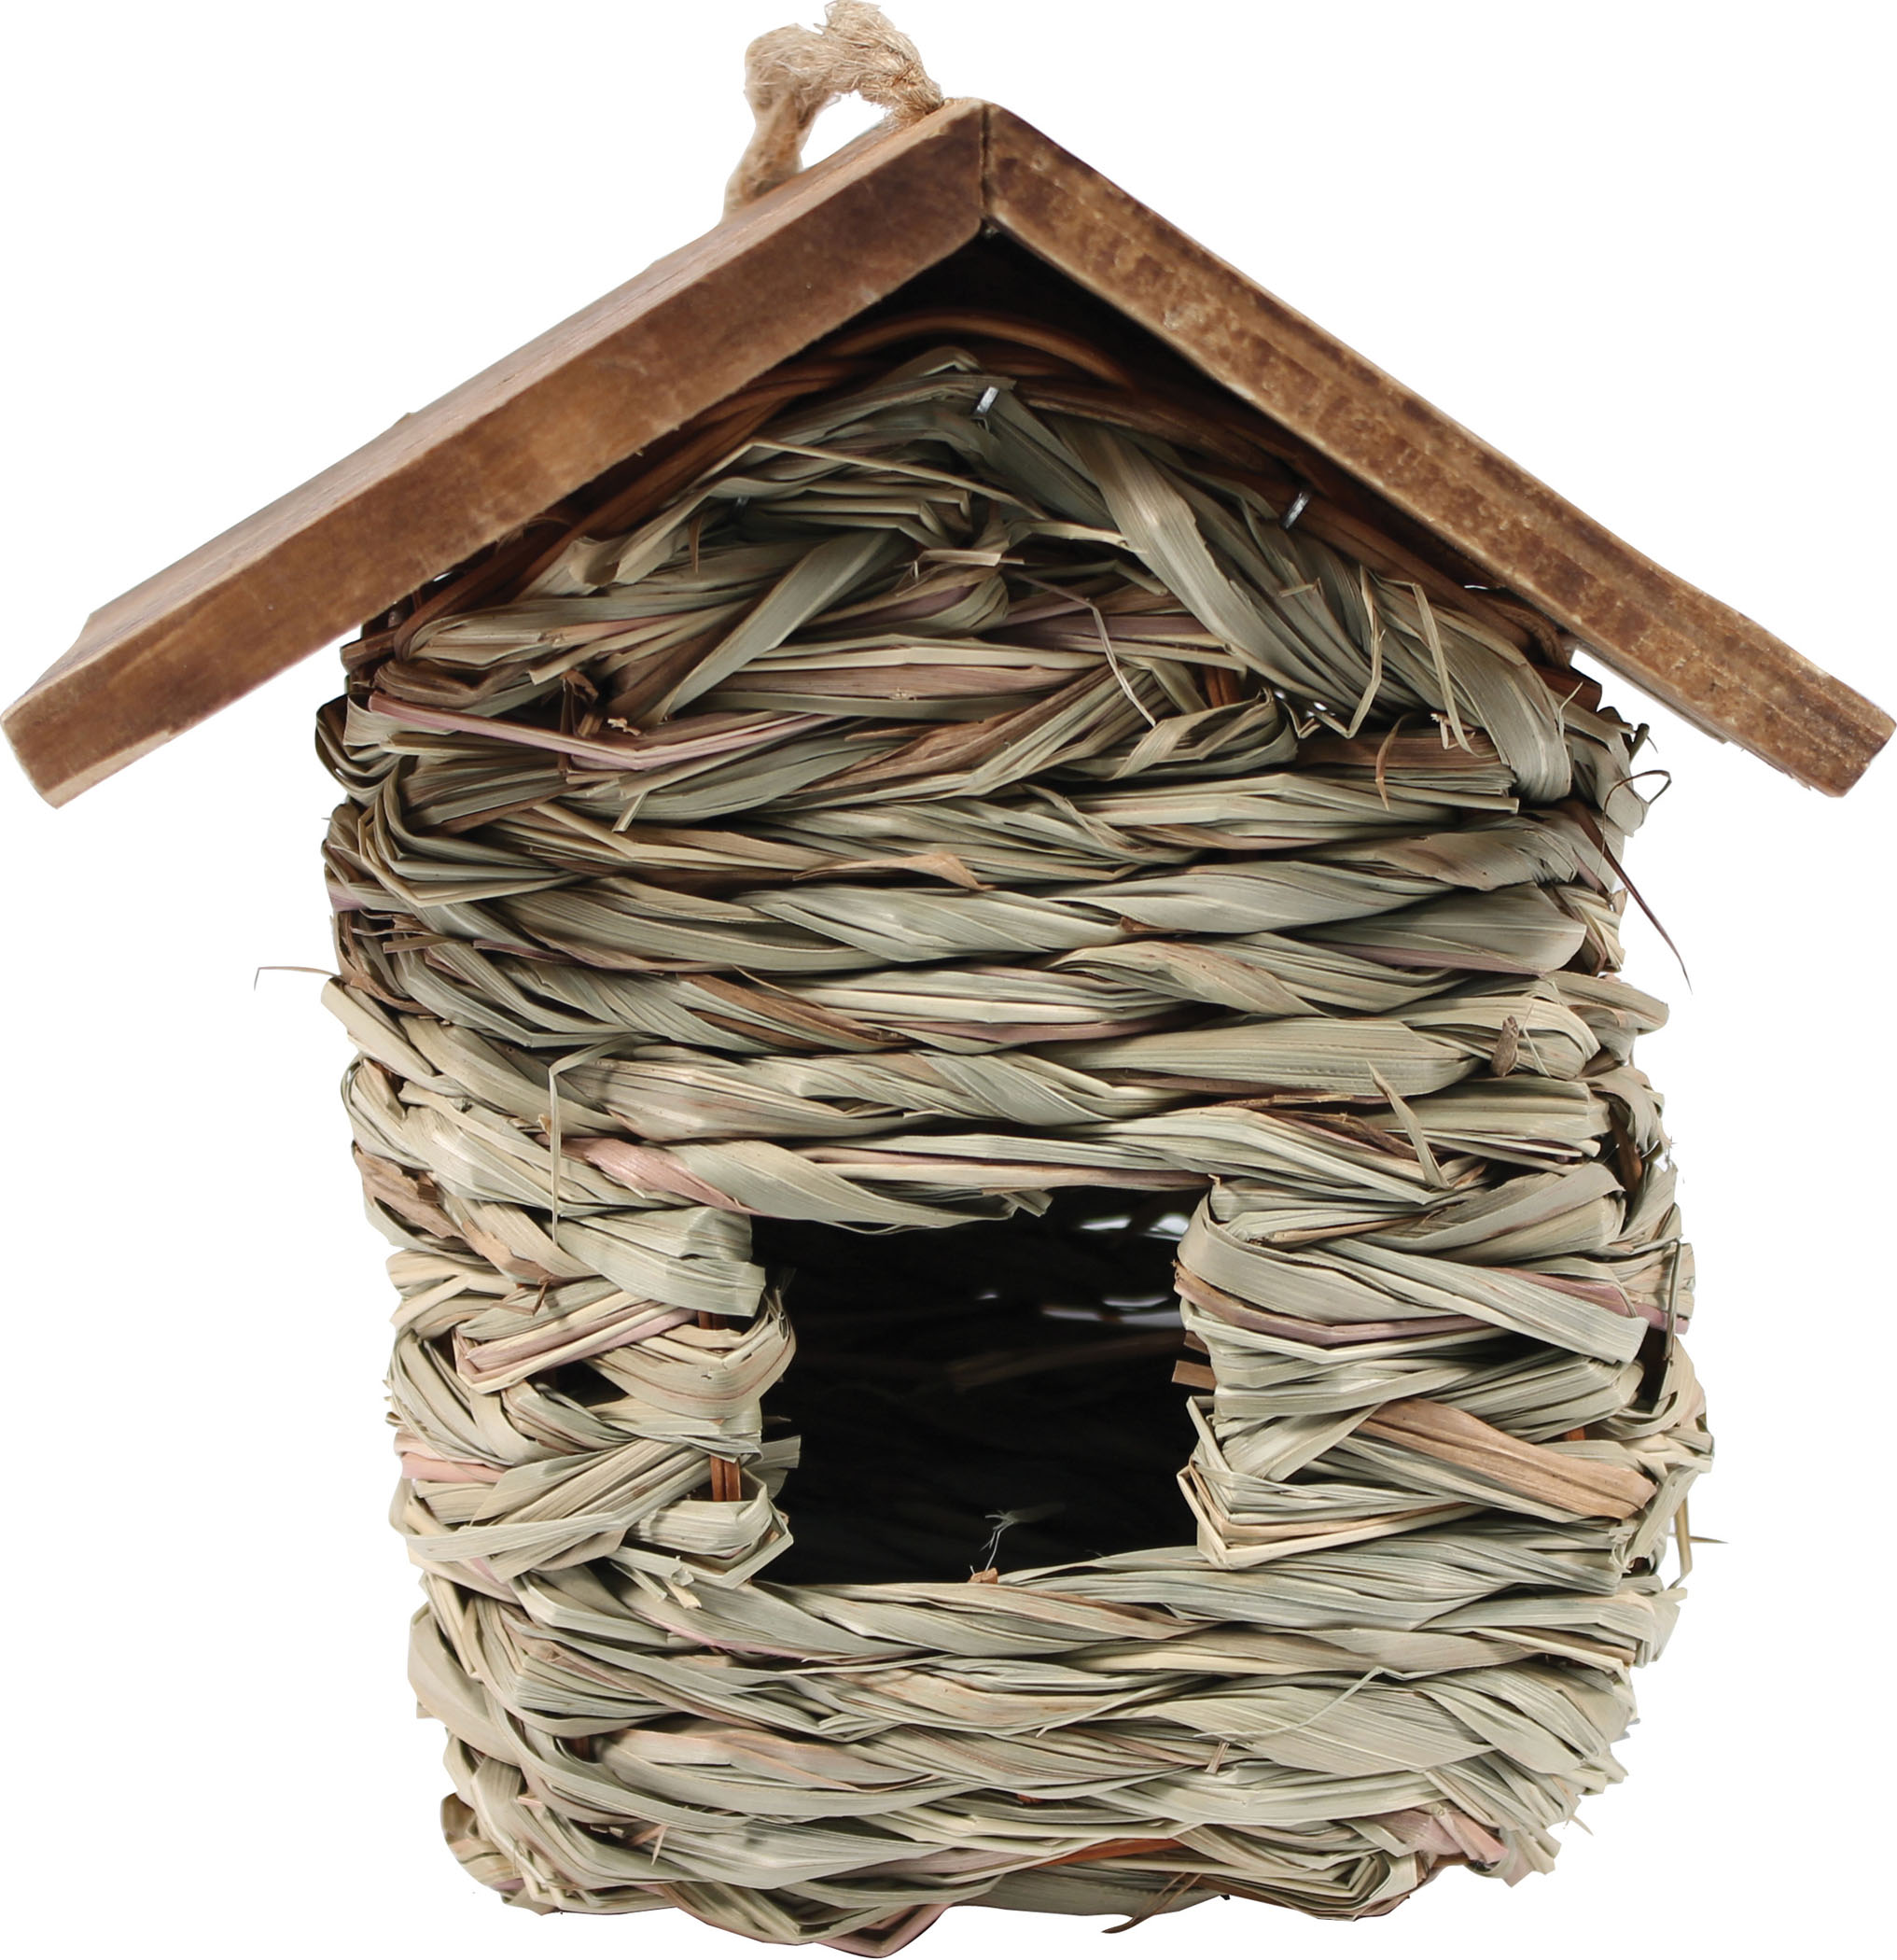 Songbird Essentials-Hanging Grass Roosting Pocket With Roof- Tan 11 Inch